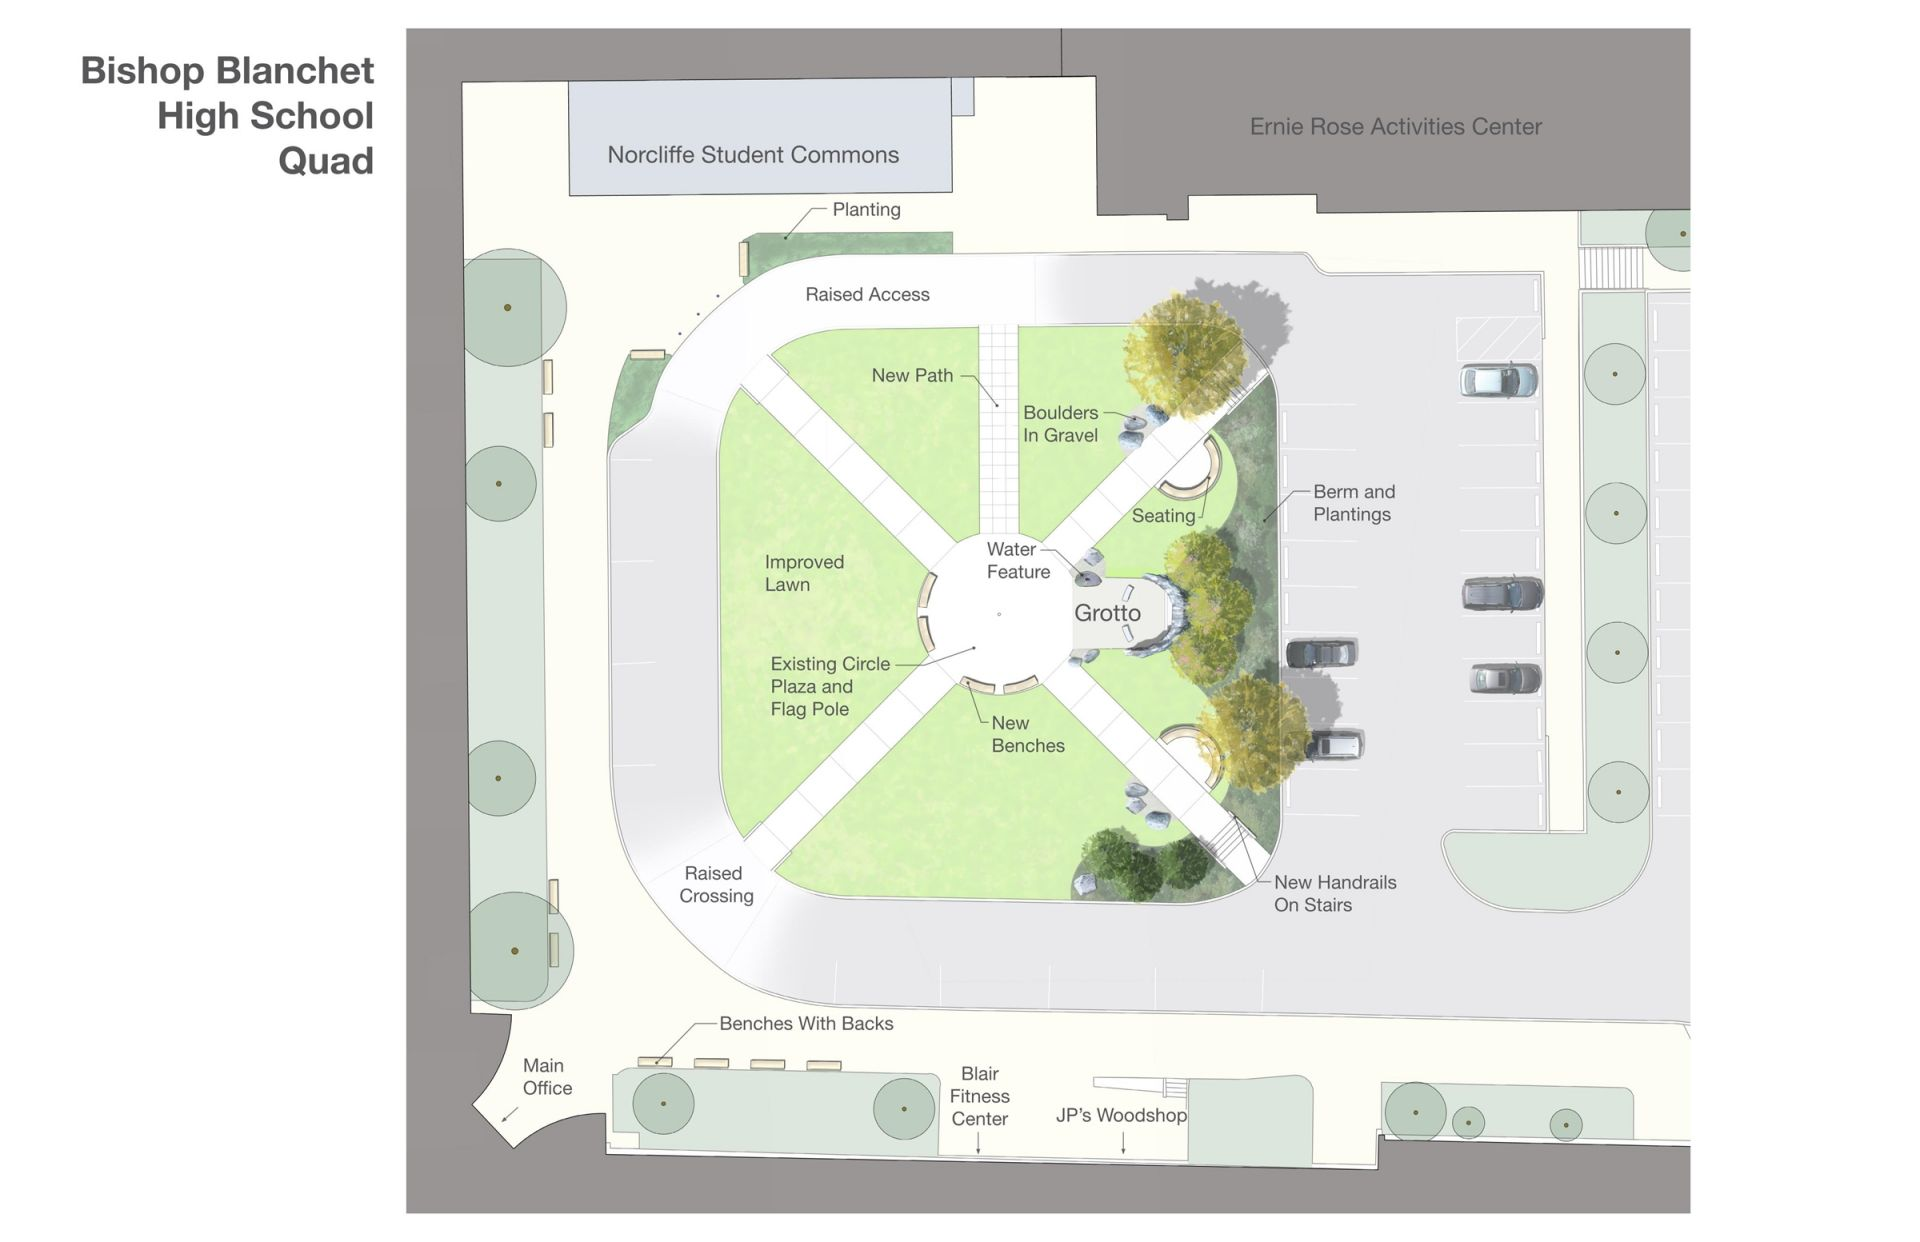 The newly named Jim Pinsoneault Quad will feature a grotto, expanded bench seating and new landscaping. This space will directly connect with the new Norcliffe Student Commons and will be a central gathering place to experience the Brave Community – whether eating lunch outdoors, stretching before practice, or saying a prayer before a test.